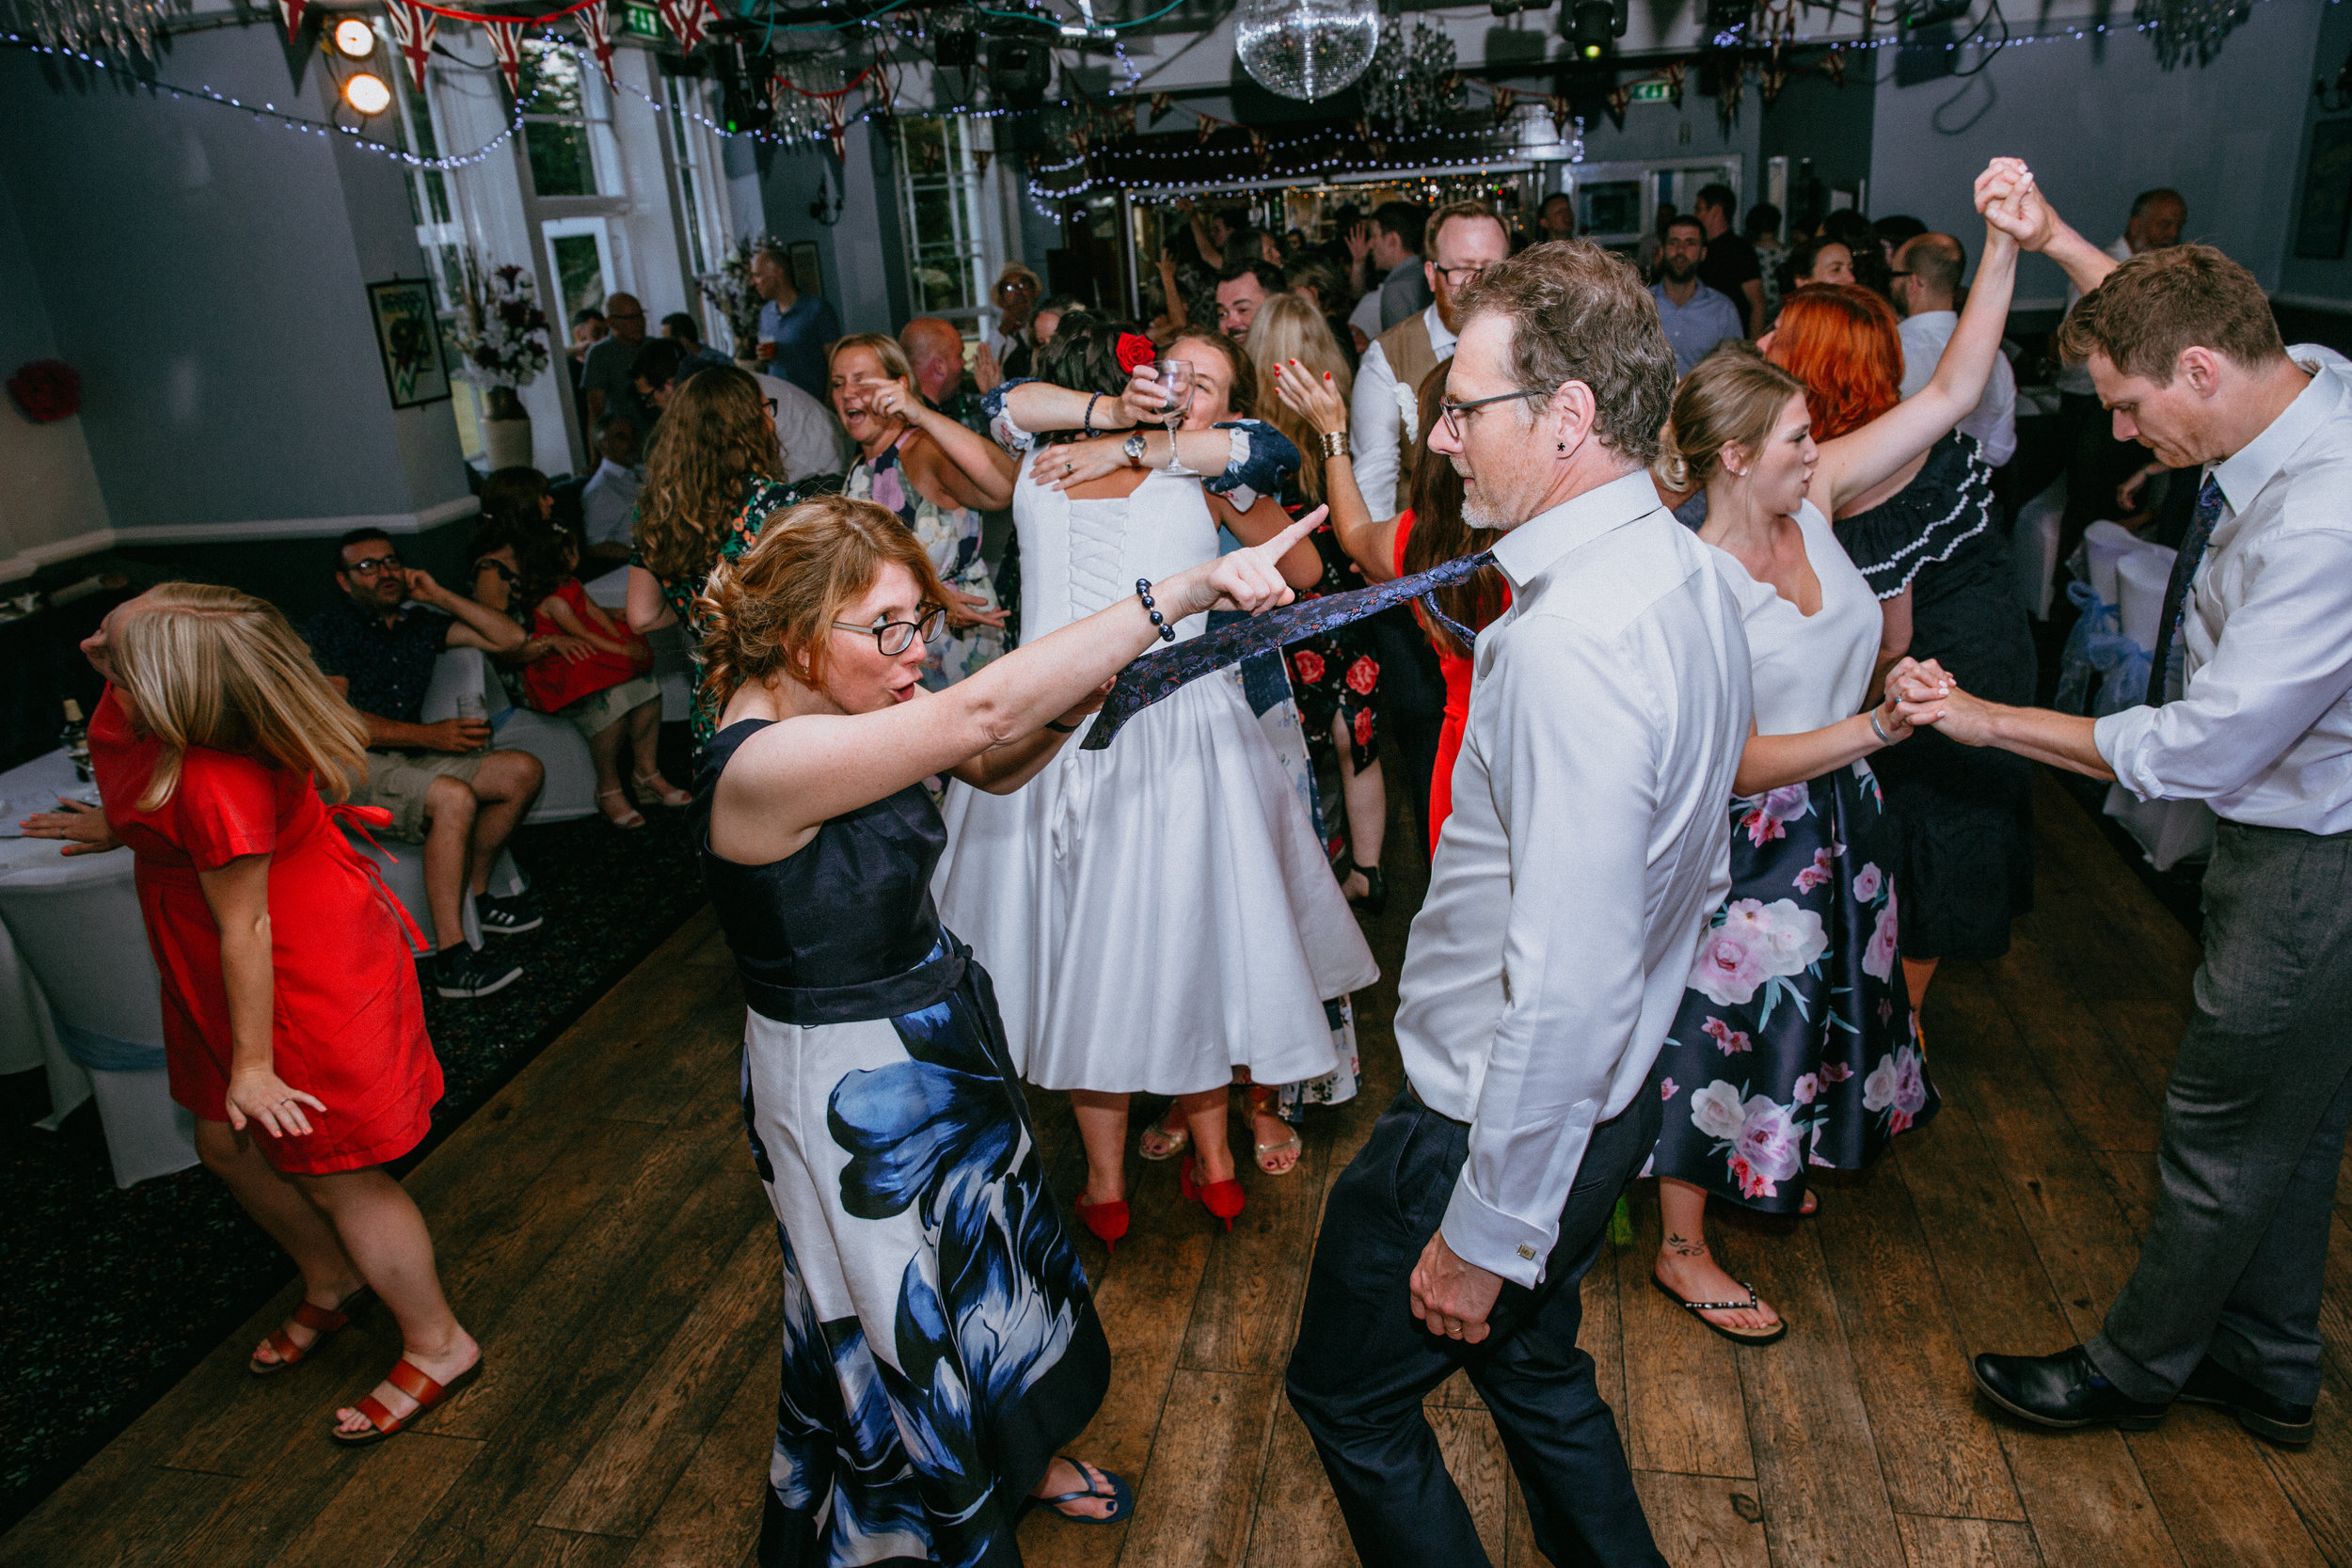 - 'He was there to capture all the really special bits of our day (as well as some of the excellent dance moves being shown once the party got started!) and - most importantly - the photos are absolutely gorgeous.'